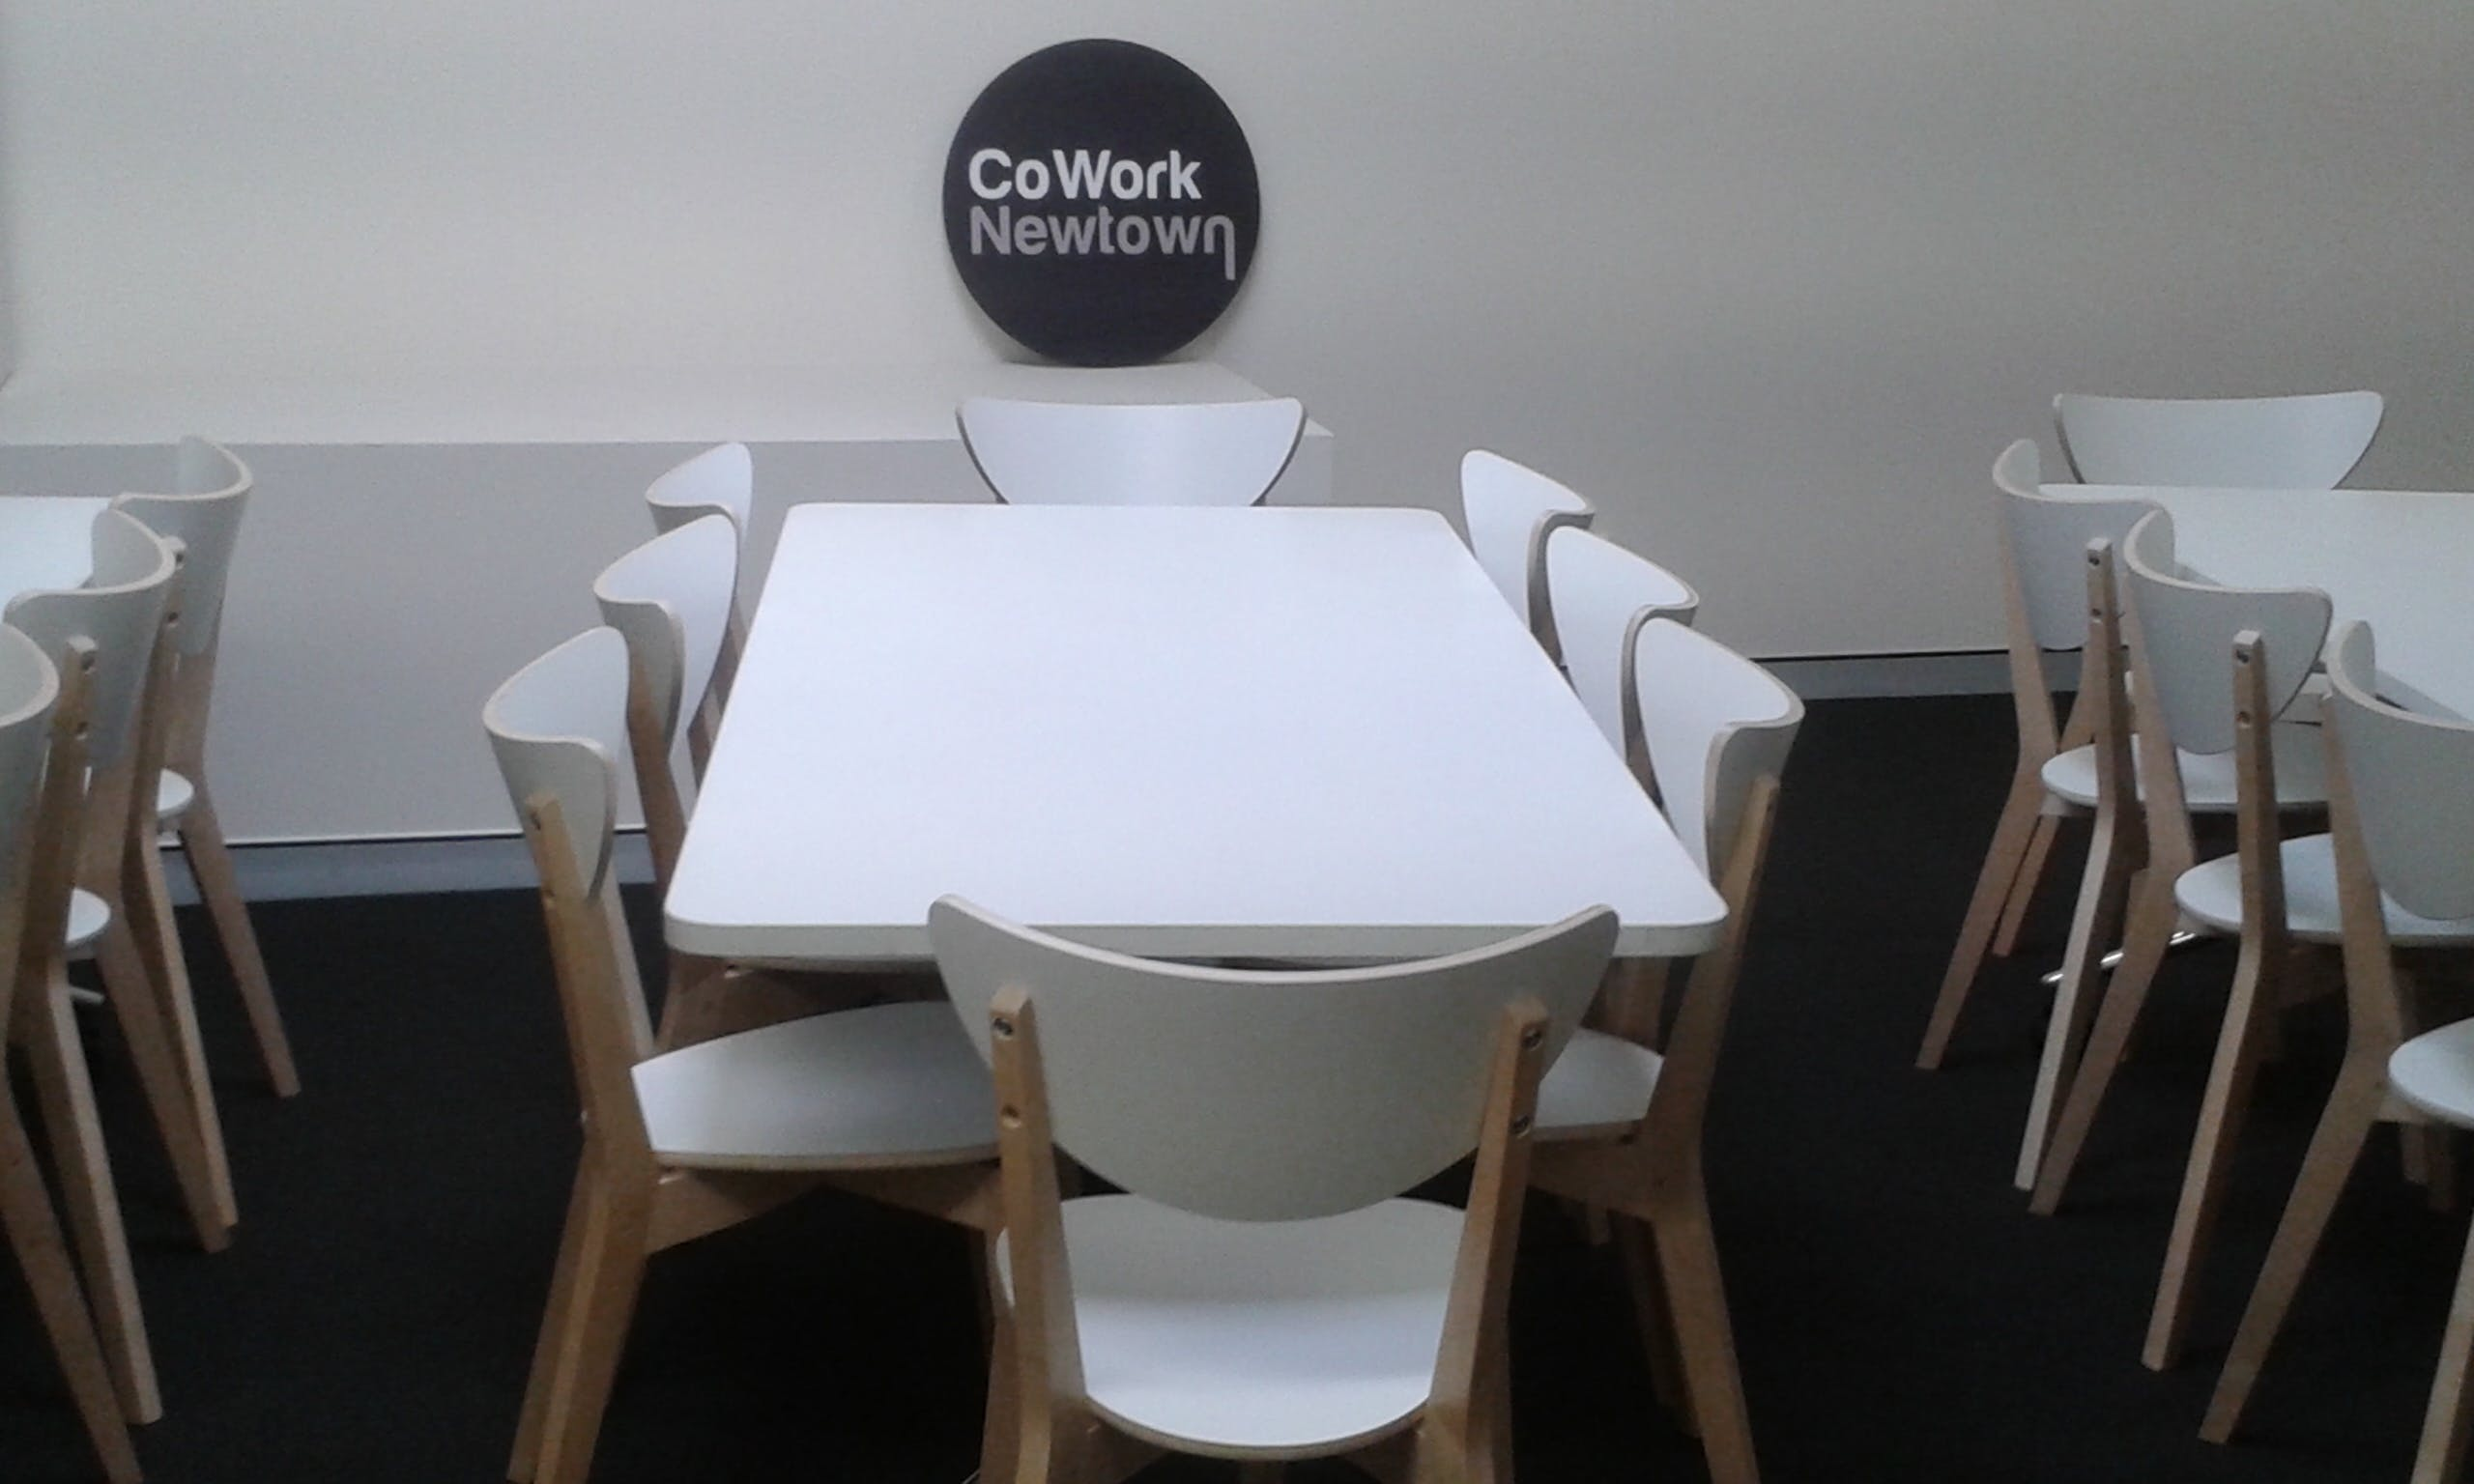 Training room at CoWork Newtown, image 3